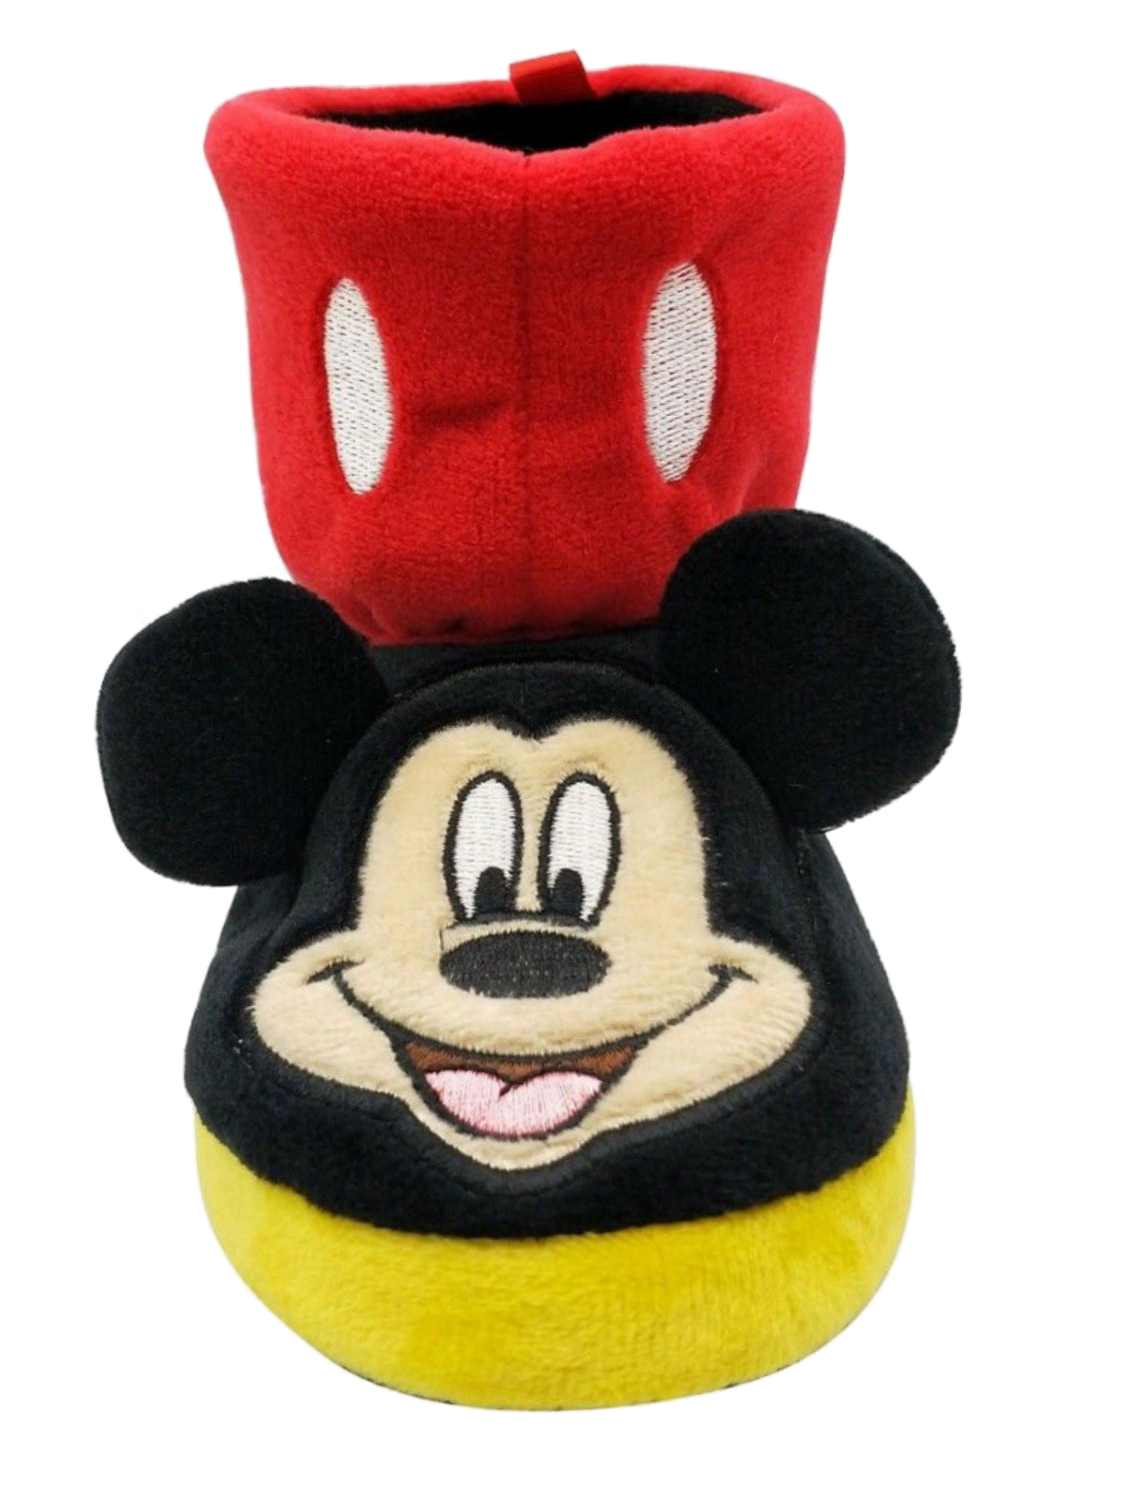 Red Mickey Mouse Slippers Boots